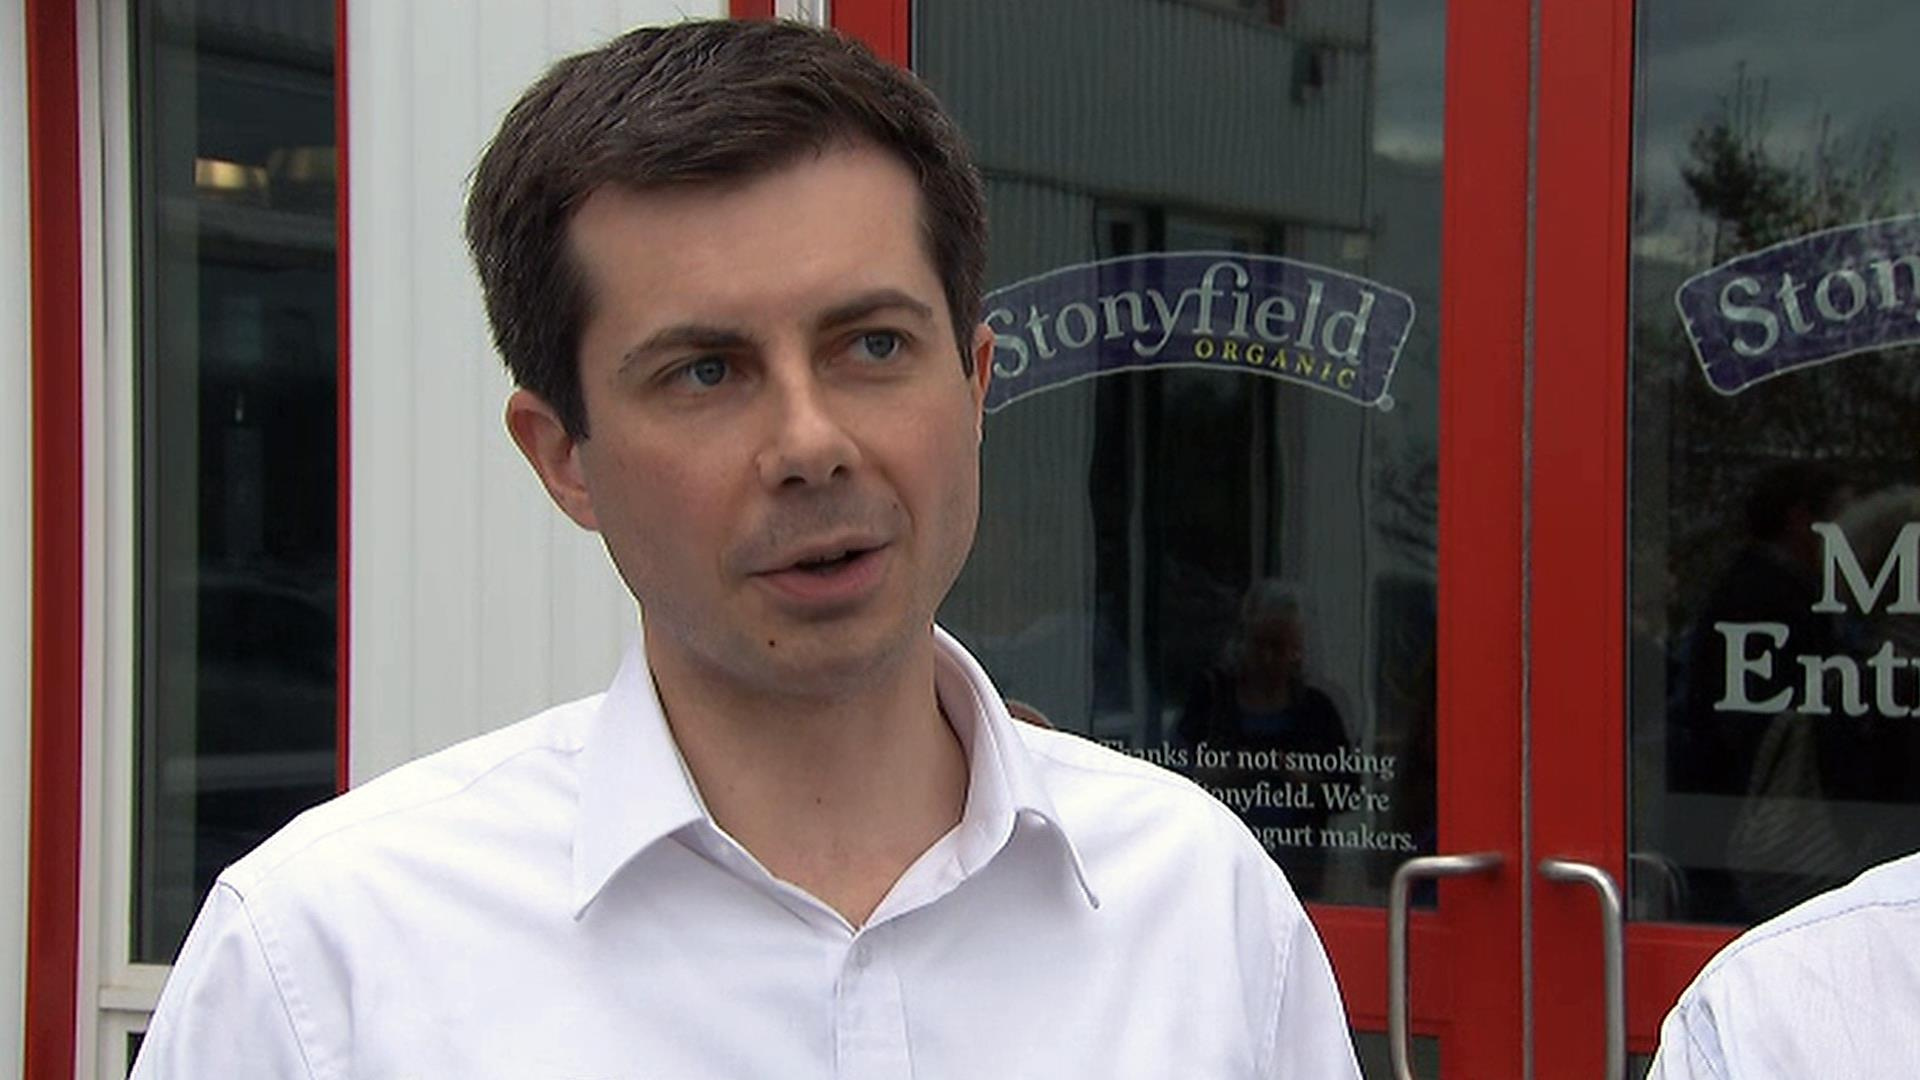 Pete Buttigieg says Trump 'deserves to be impeached,' calls on Congress for action